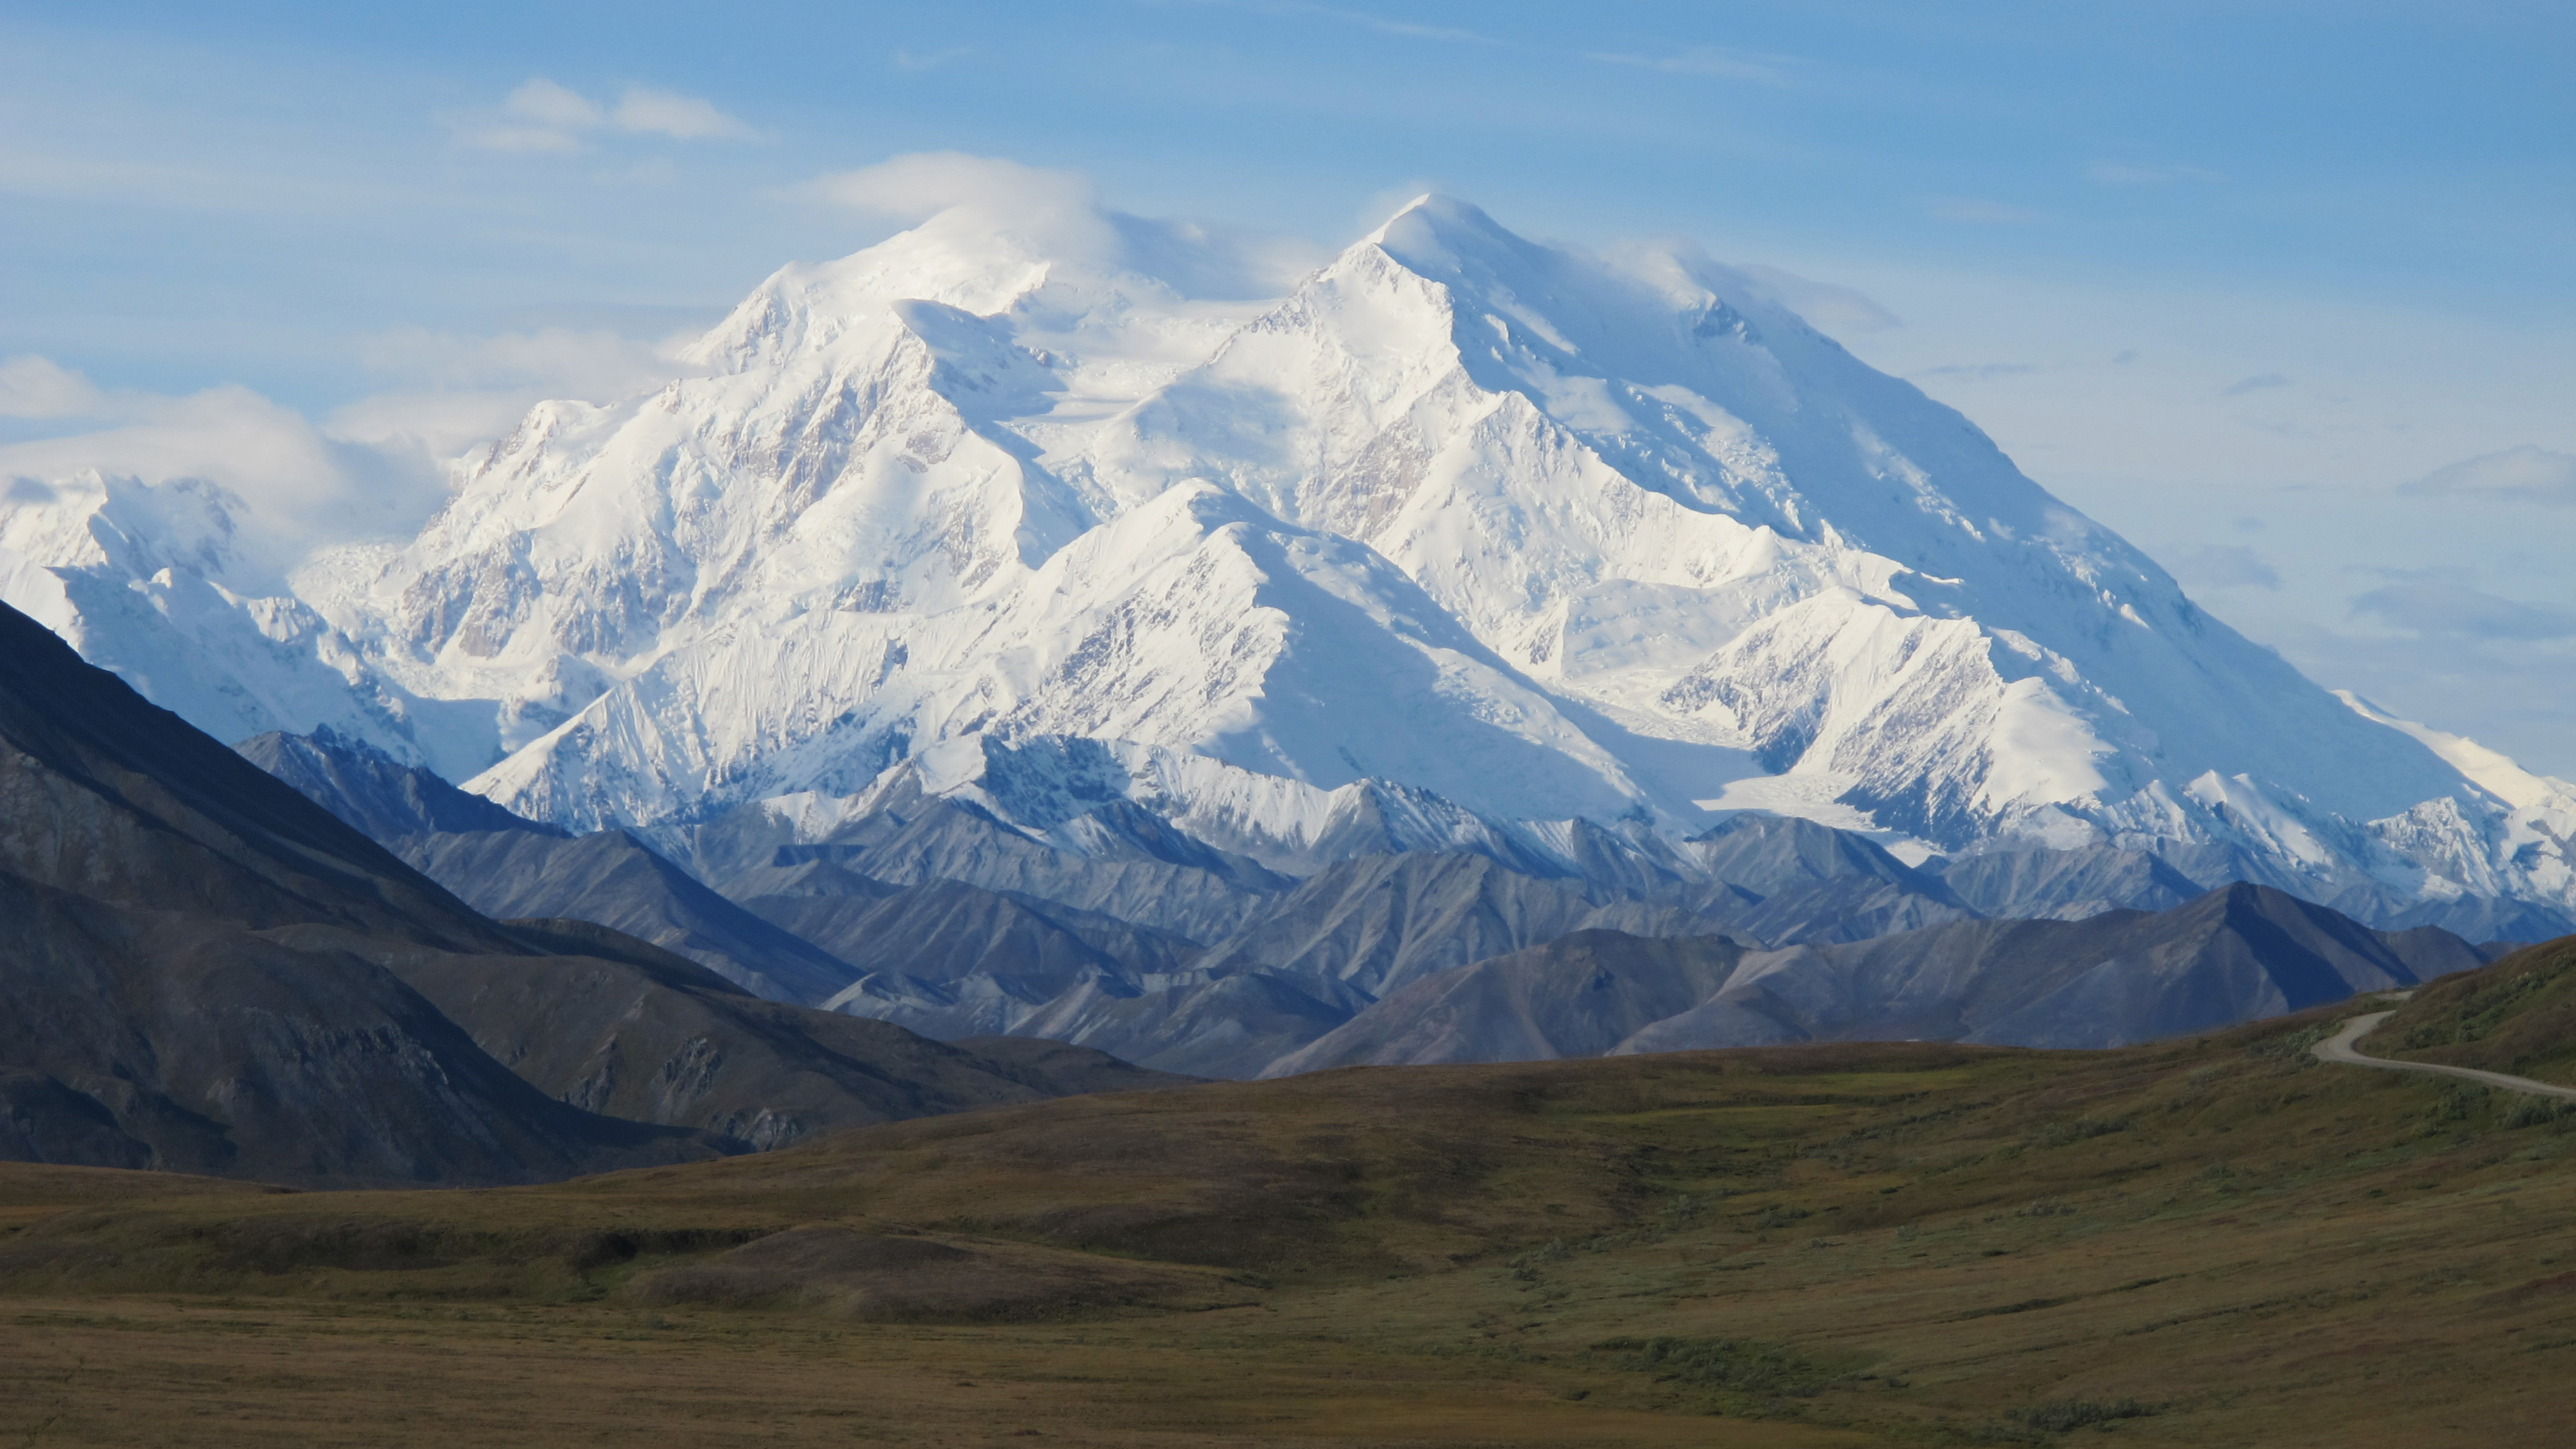 Mt. McKinley to Denali: How A Mountain's Renaming Got Tied Up in Politics